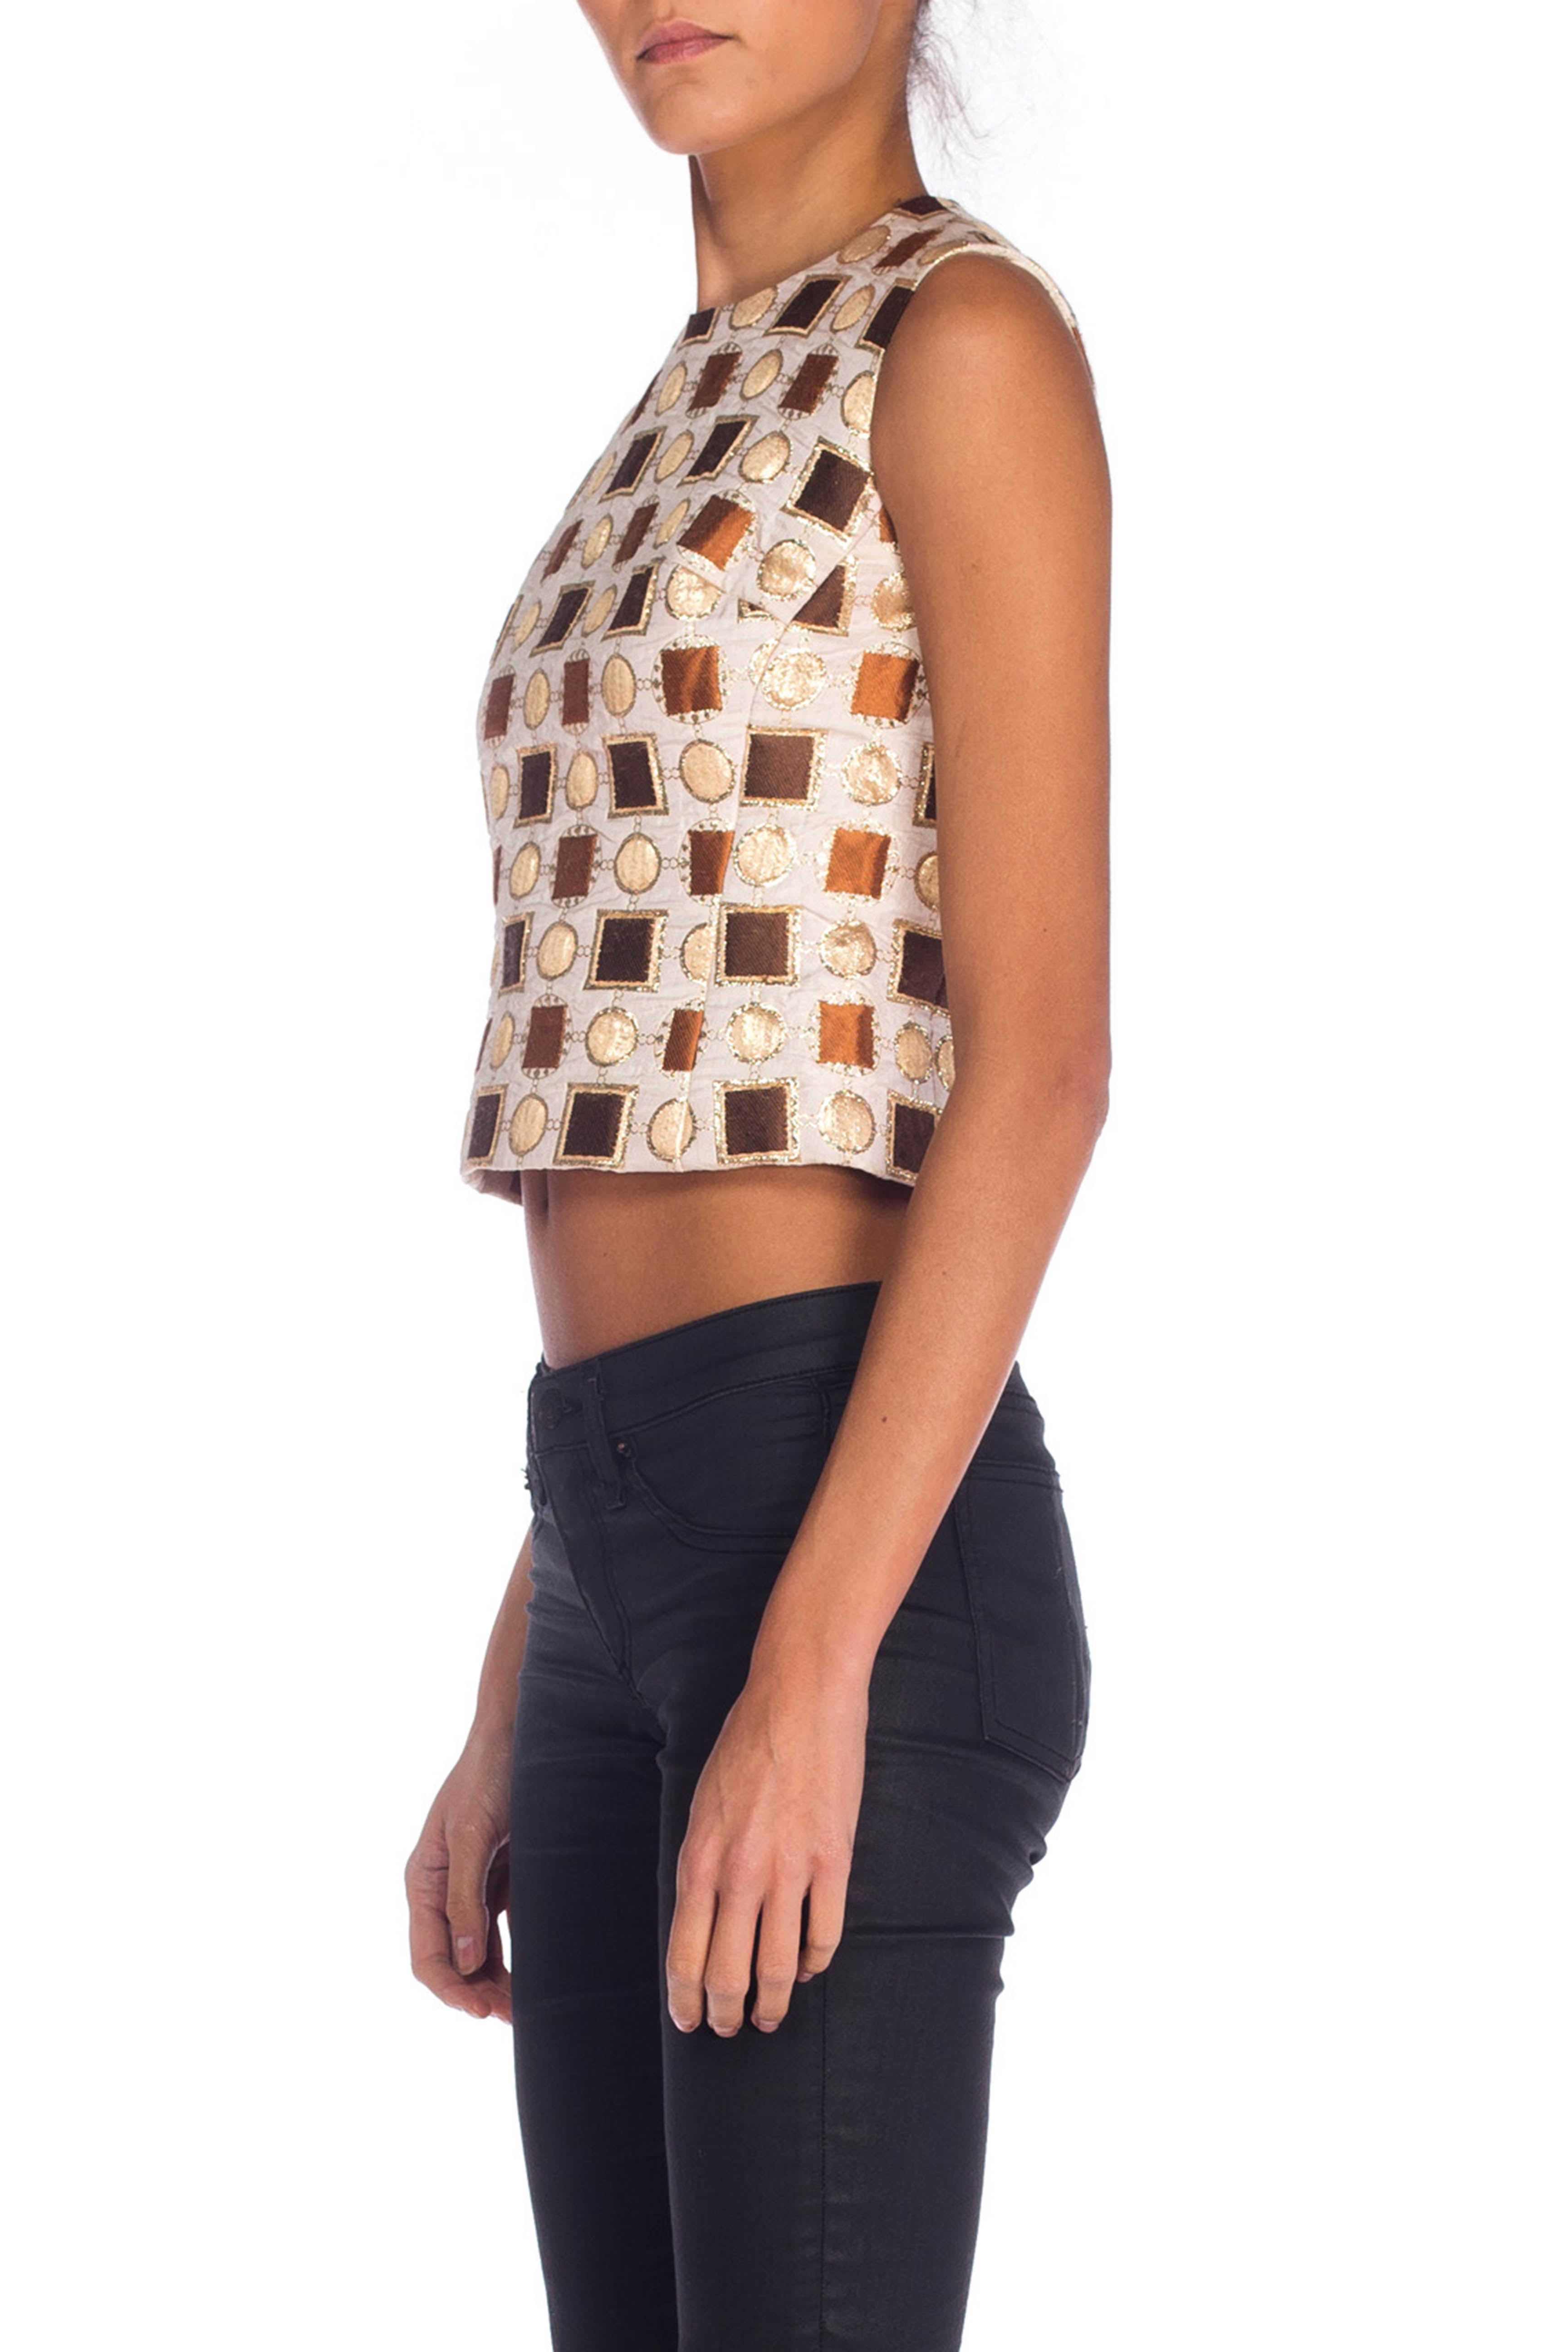 1960S Haute Couture Silk Lurex Damask Geometric Gold Shell Top From Paris